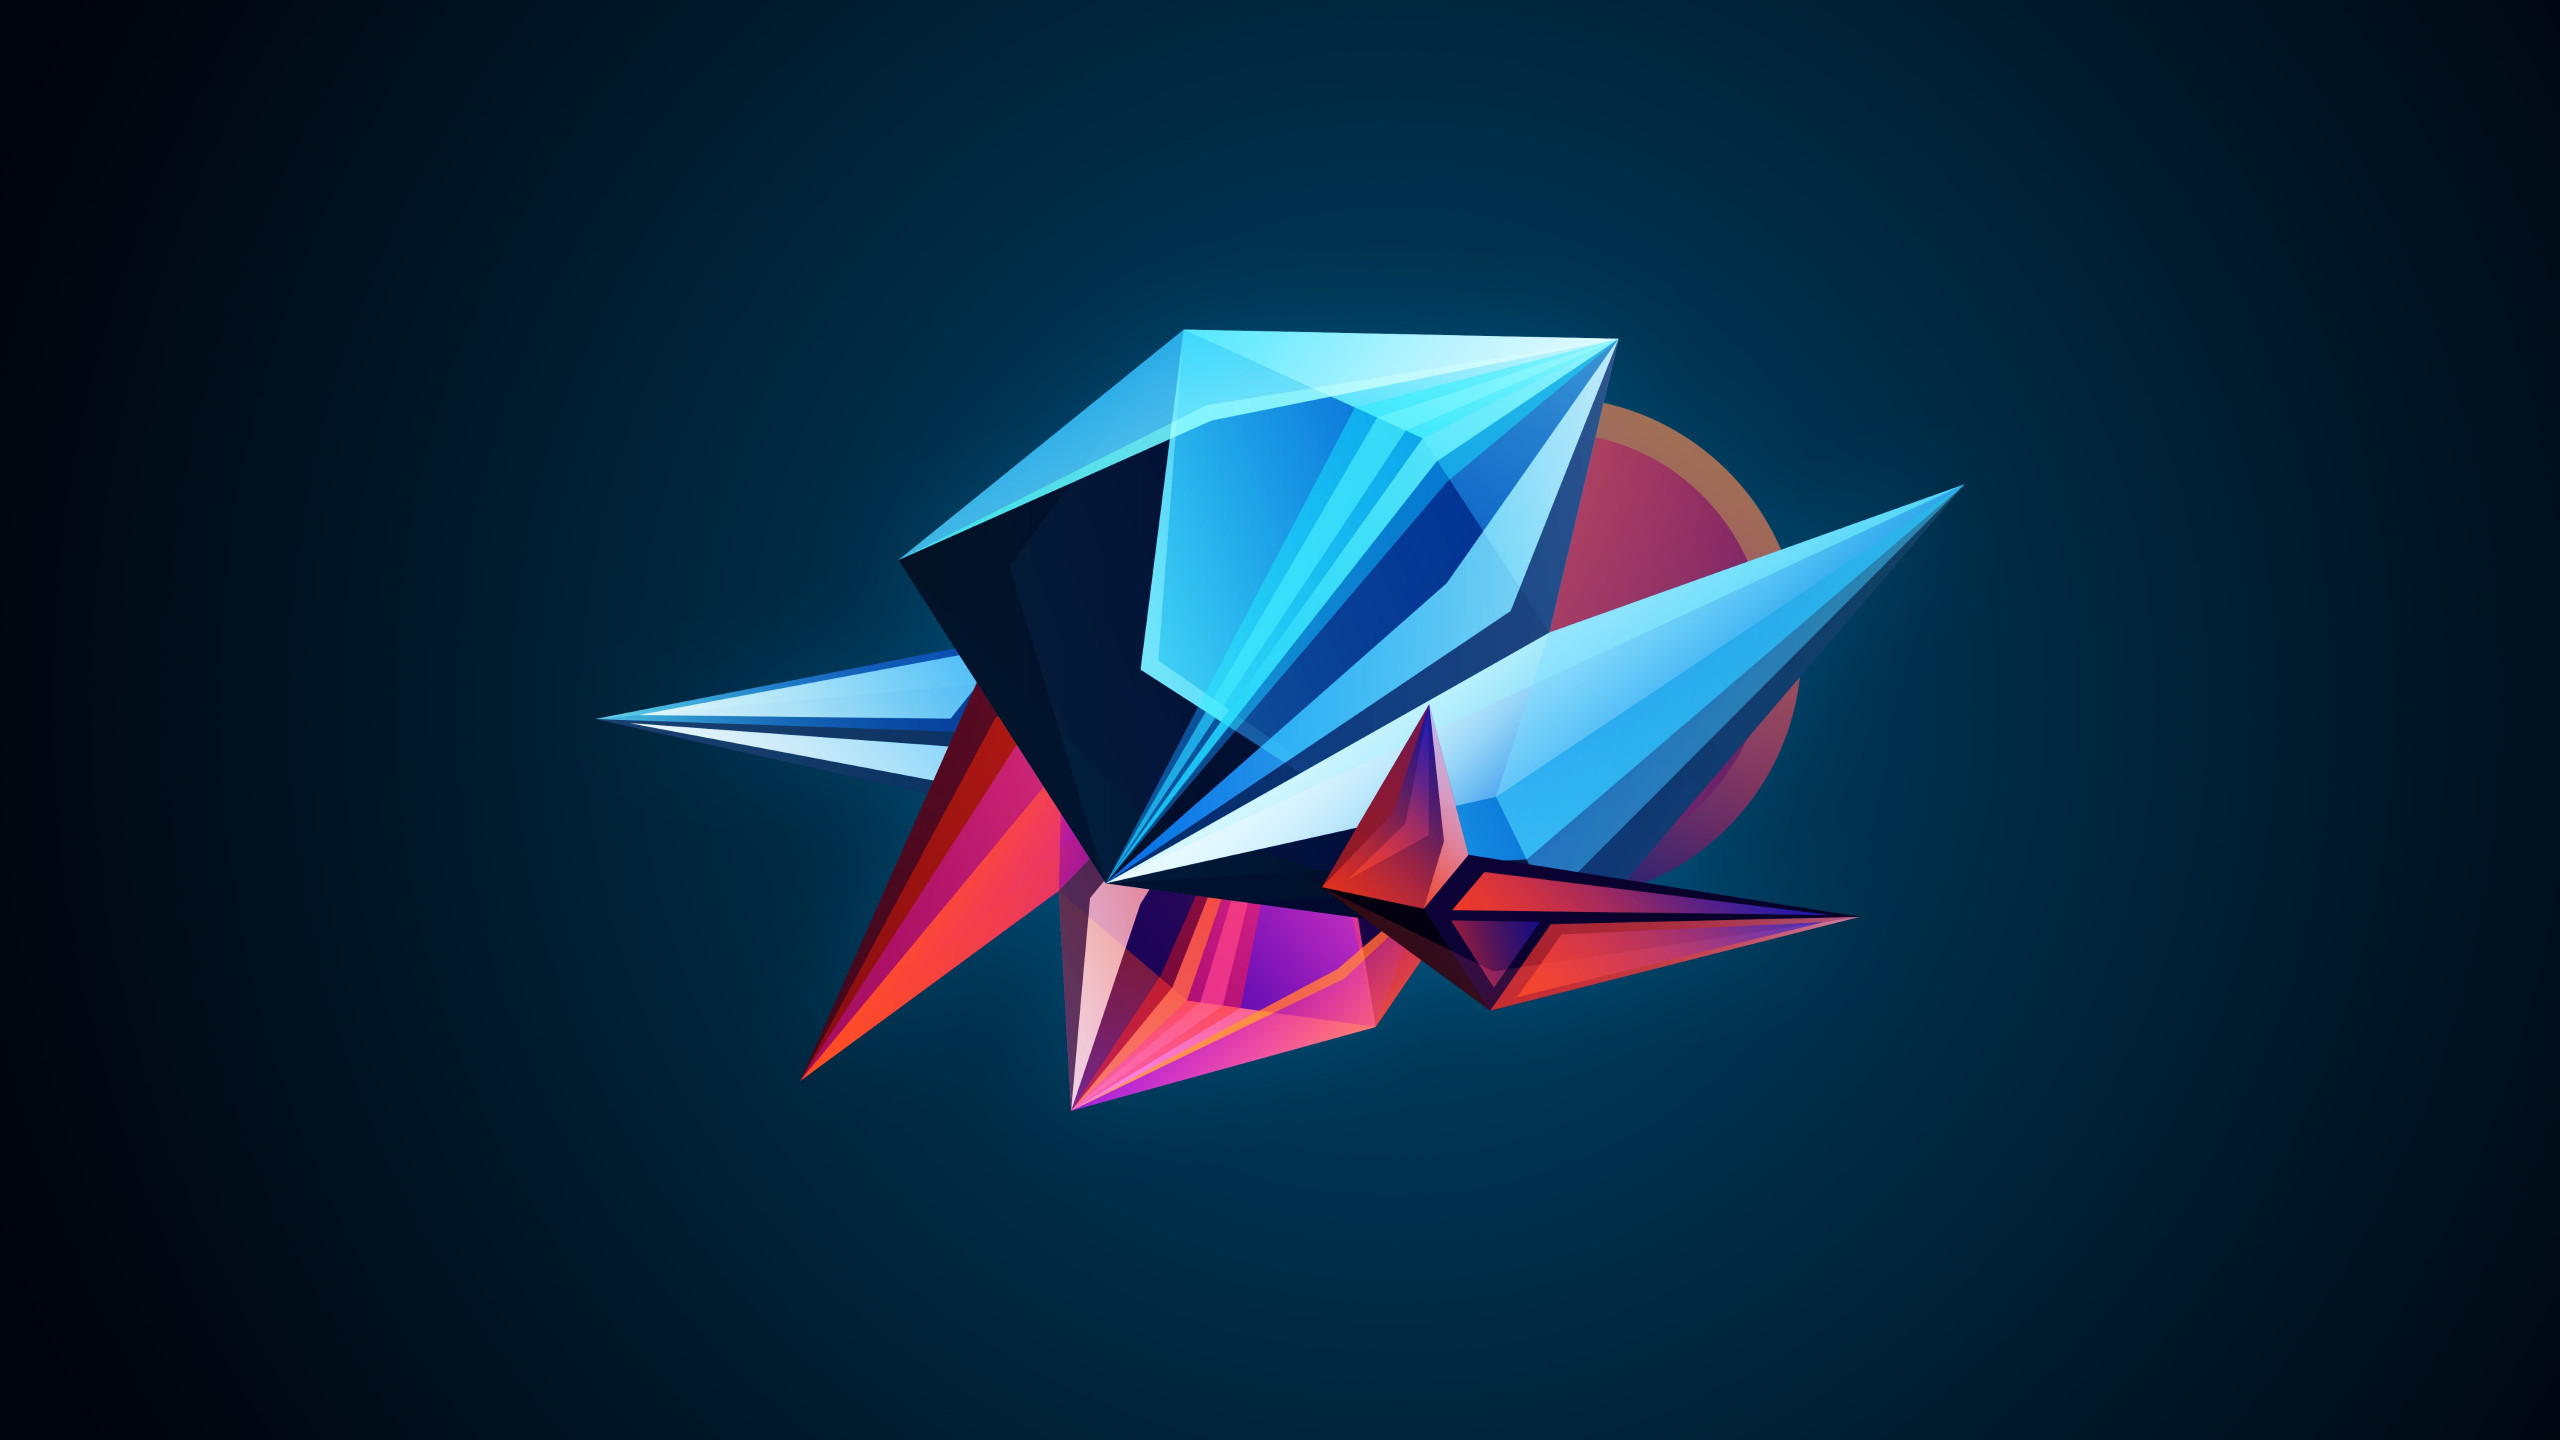 Abstract 3D shapes wallpaper 2560x1440